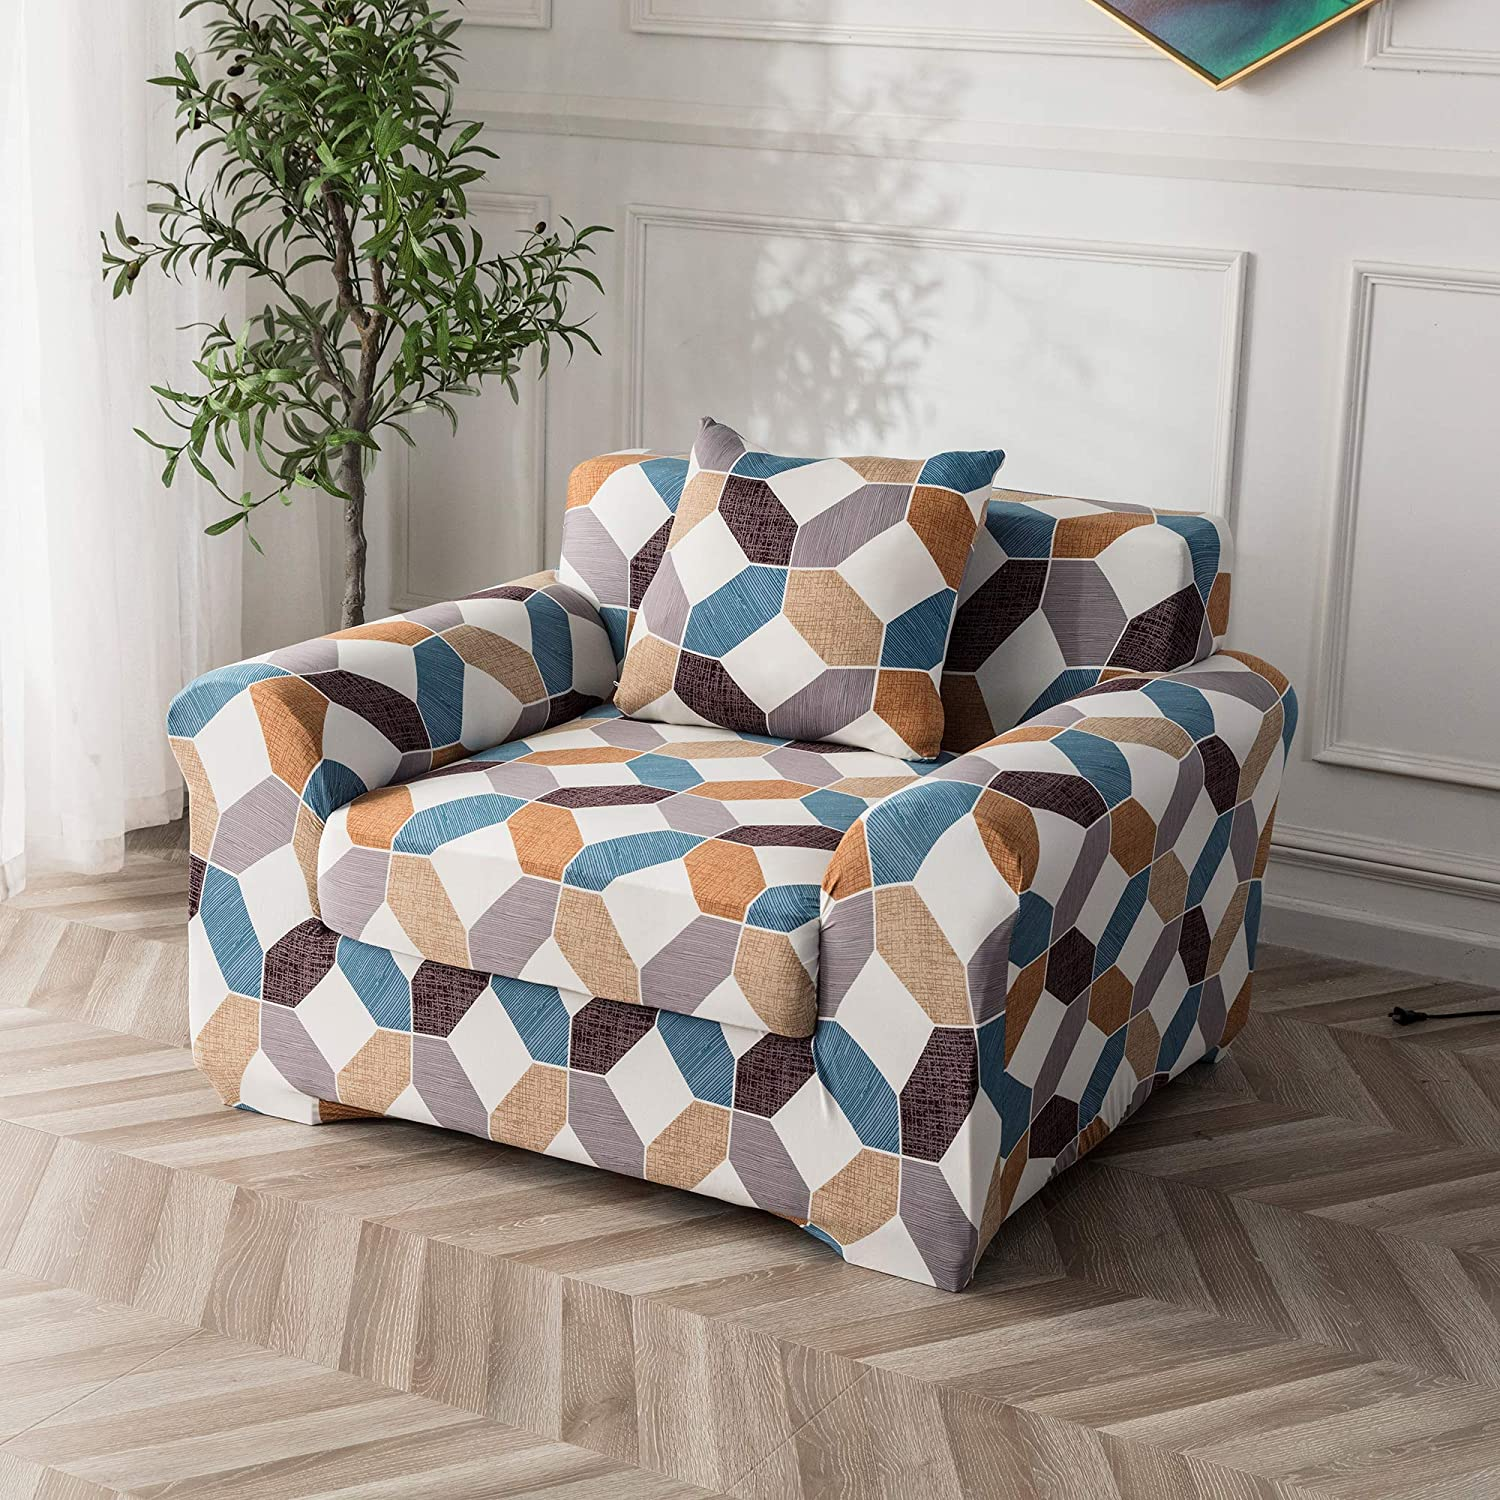 Gelozed Printed Sofa Cover f Couch Slipcovers Recommendation SALENEW very popular Stretch